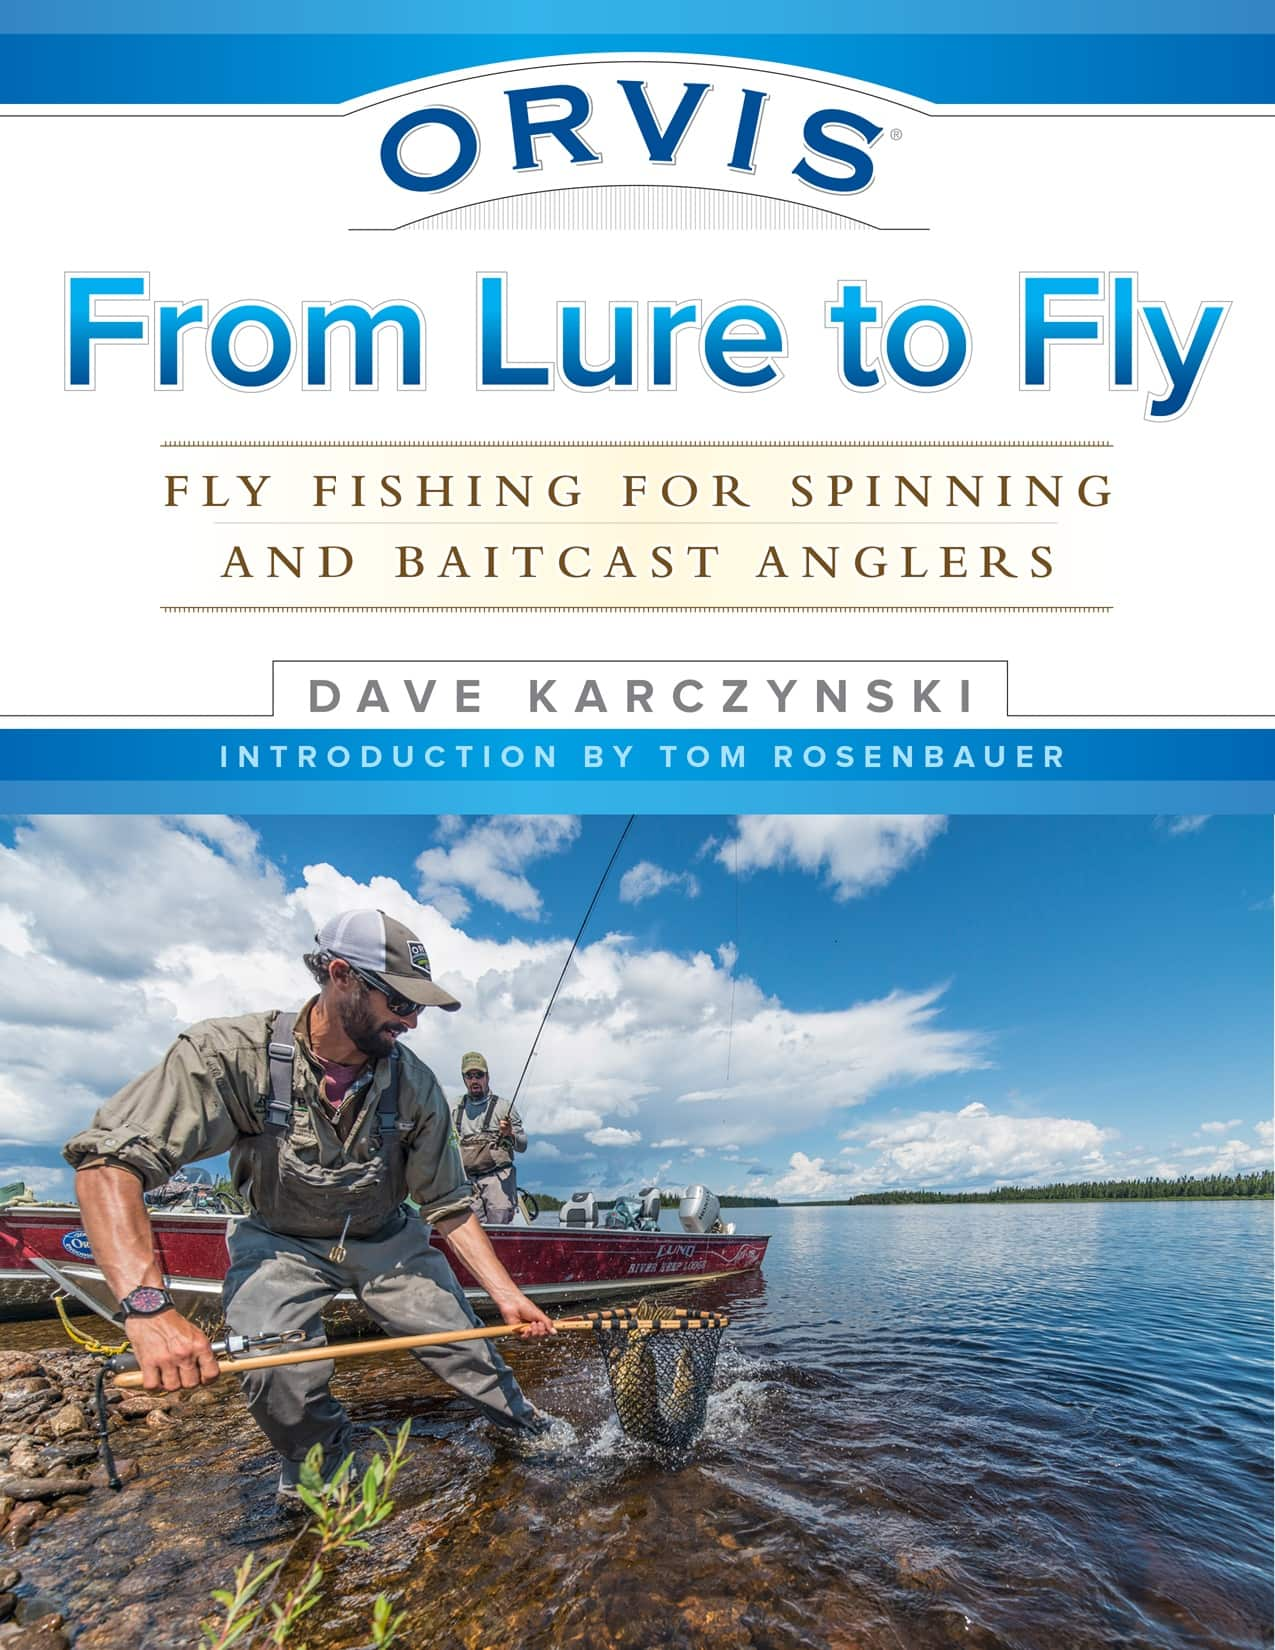 From Lure to Fly, by Dave Karczynski